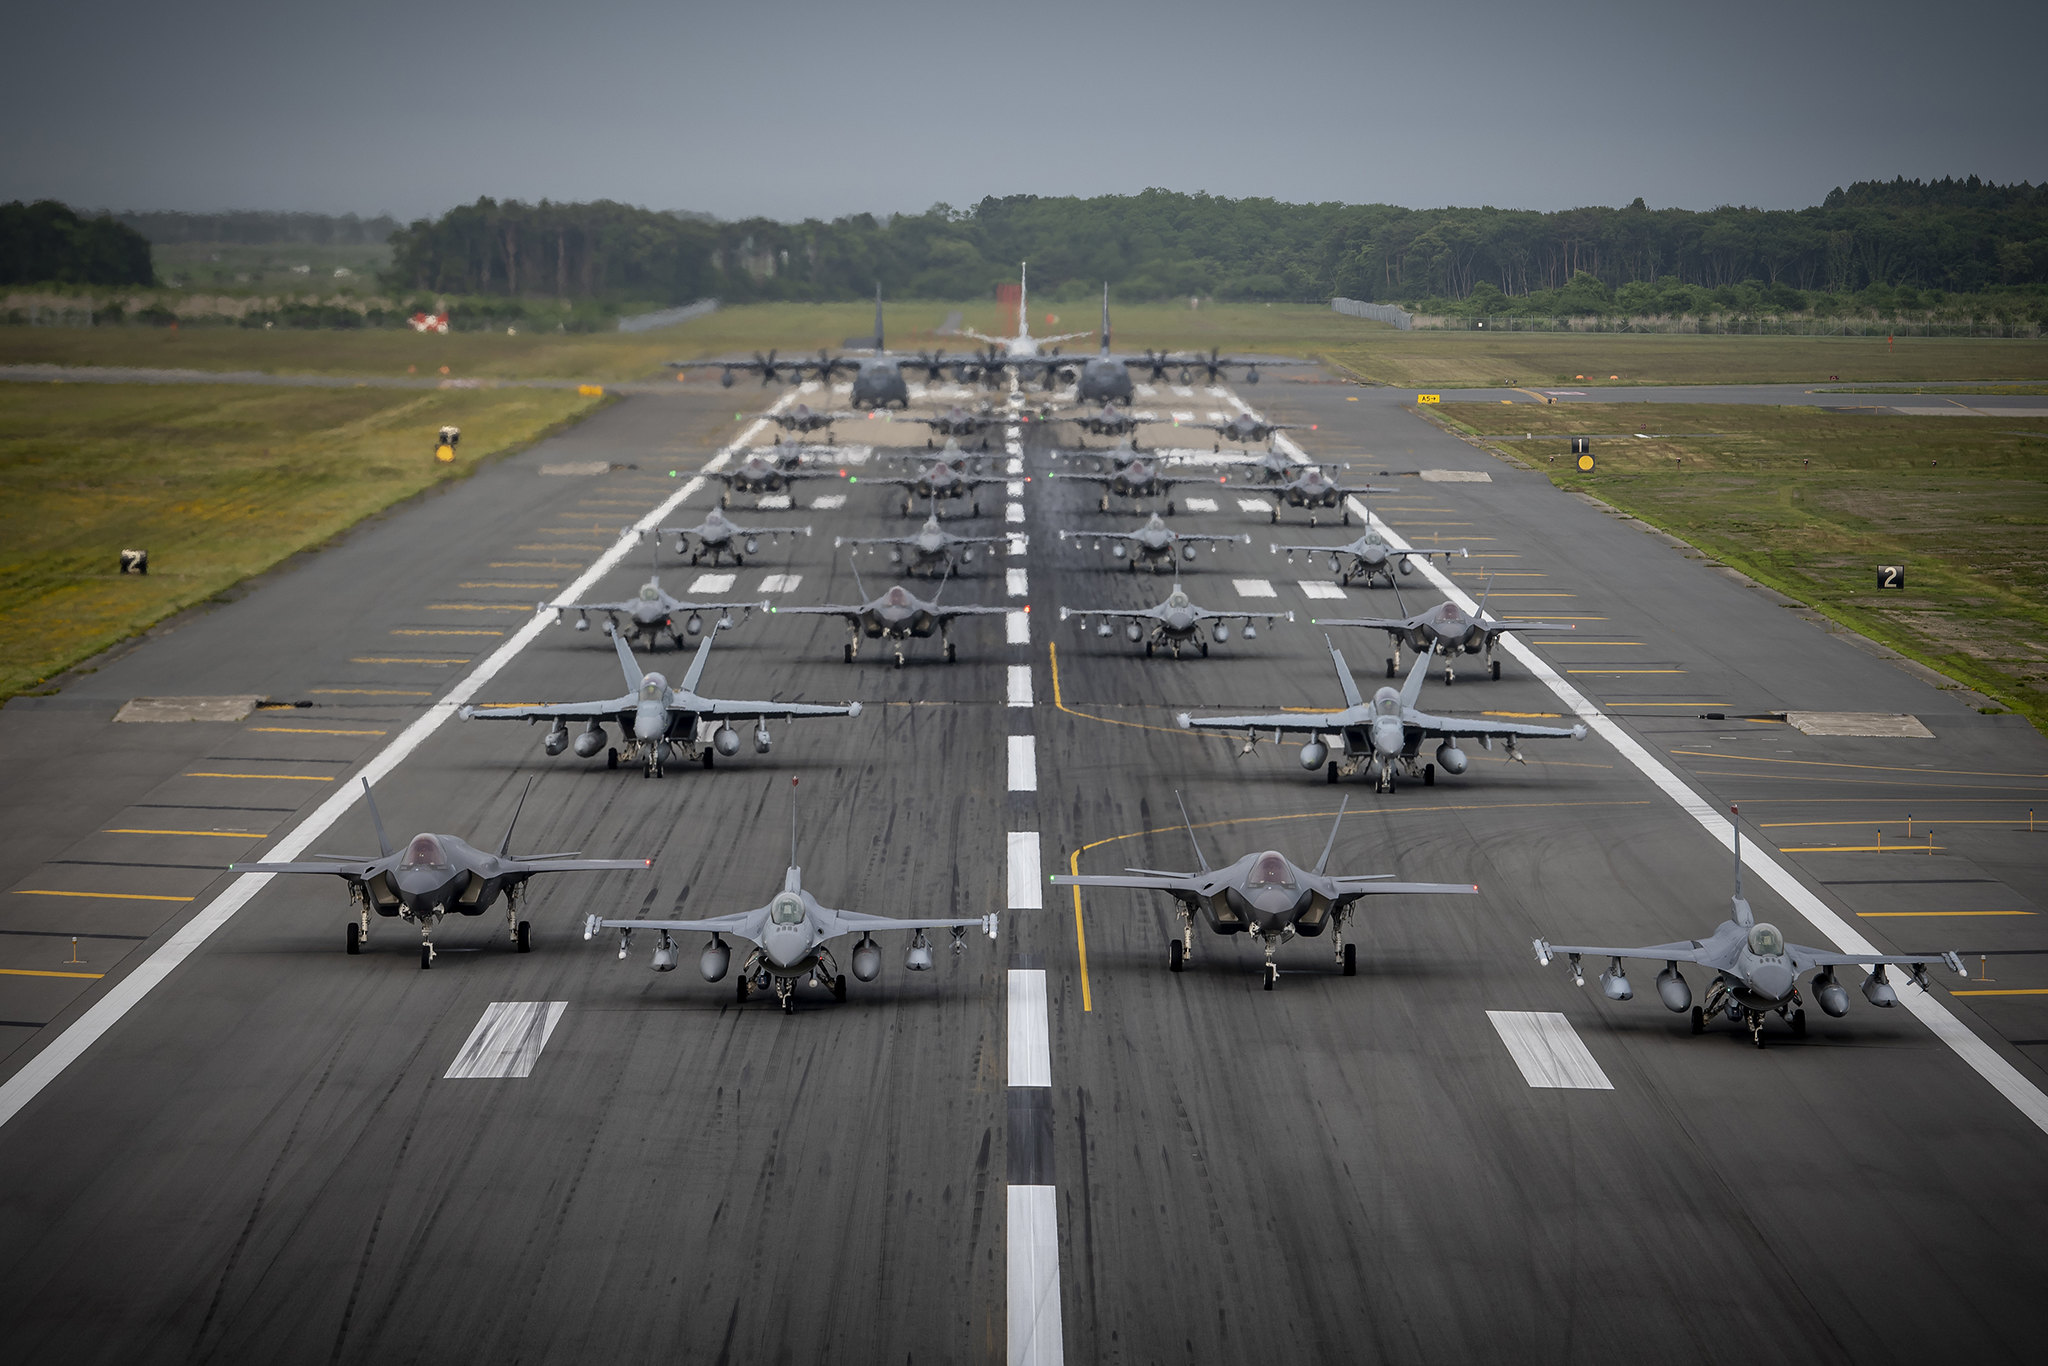 """Twelve U.S. Air Force F-16CM Fighting Falcons, 12 Koku-Jieitai F-35A Lightning II Joint Strike Fighters, two U.S. Navy EA-18G Growlers, a USN C-12 Huron, two USAF MC-130J Commando II aircraft, and a USN P-8 Poseidon participate in an """"Elephant Walk"""" at Misawa Air Base, Japan, June 22, 2020. It was Misawa Air Base's first time hosting a bilateral and joint Elephant Walk. (Airman 1st Class China M. Shock/Air Force)"""